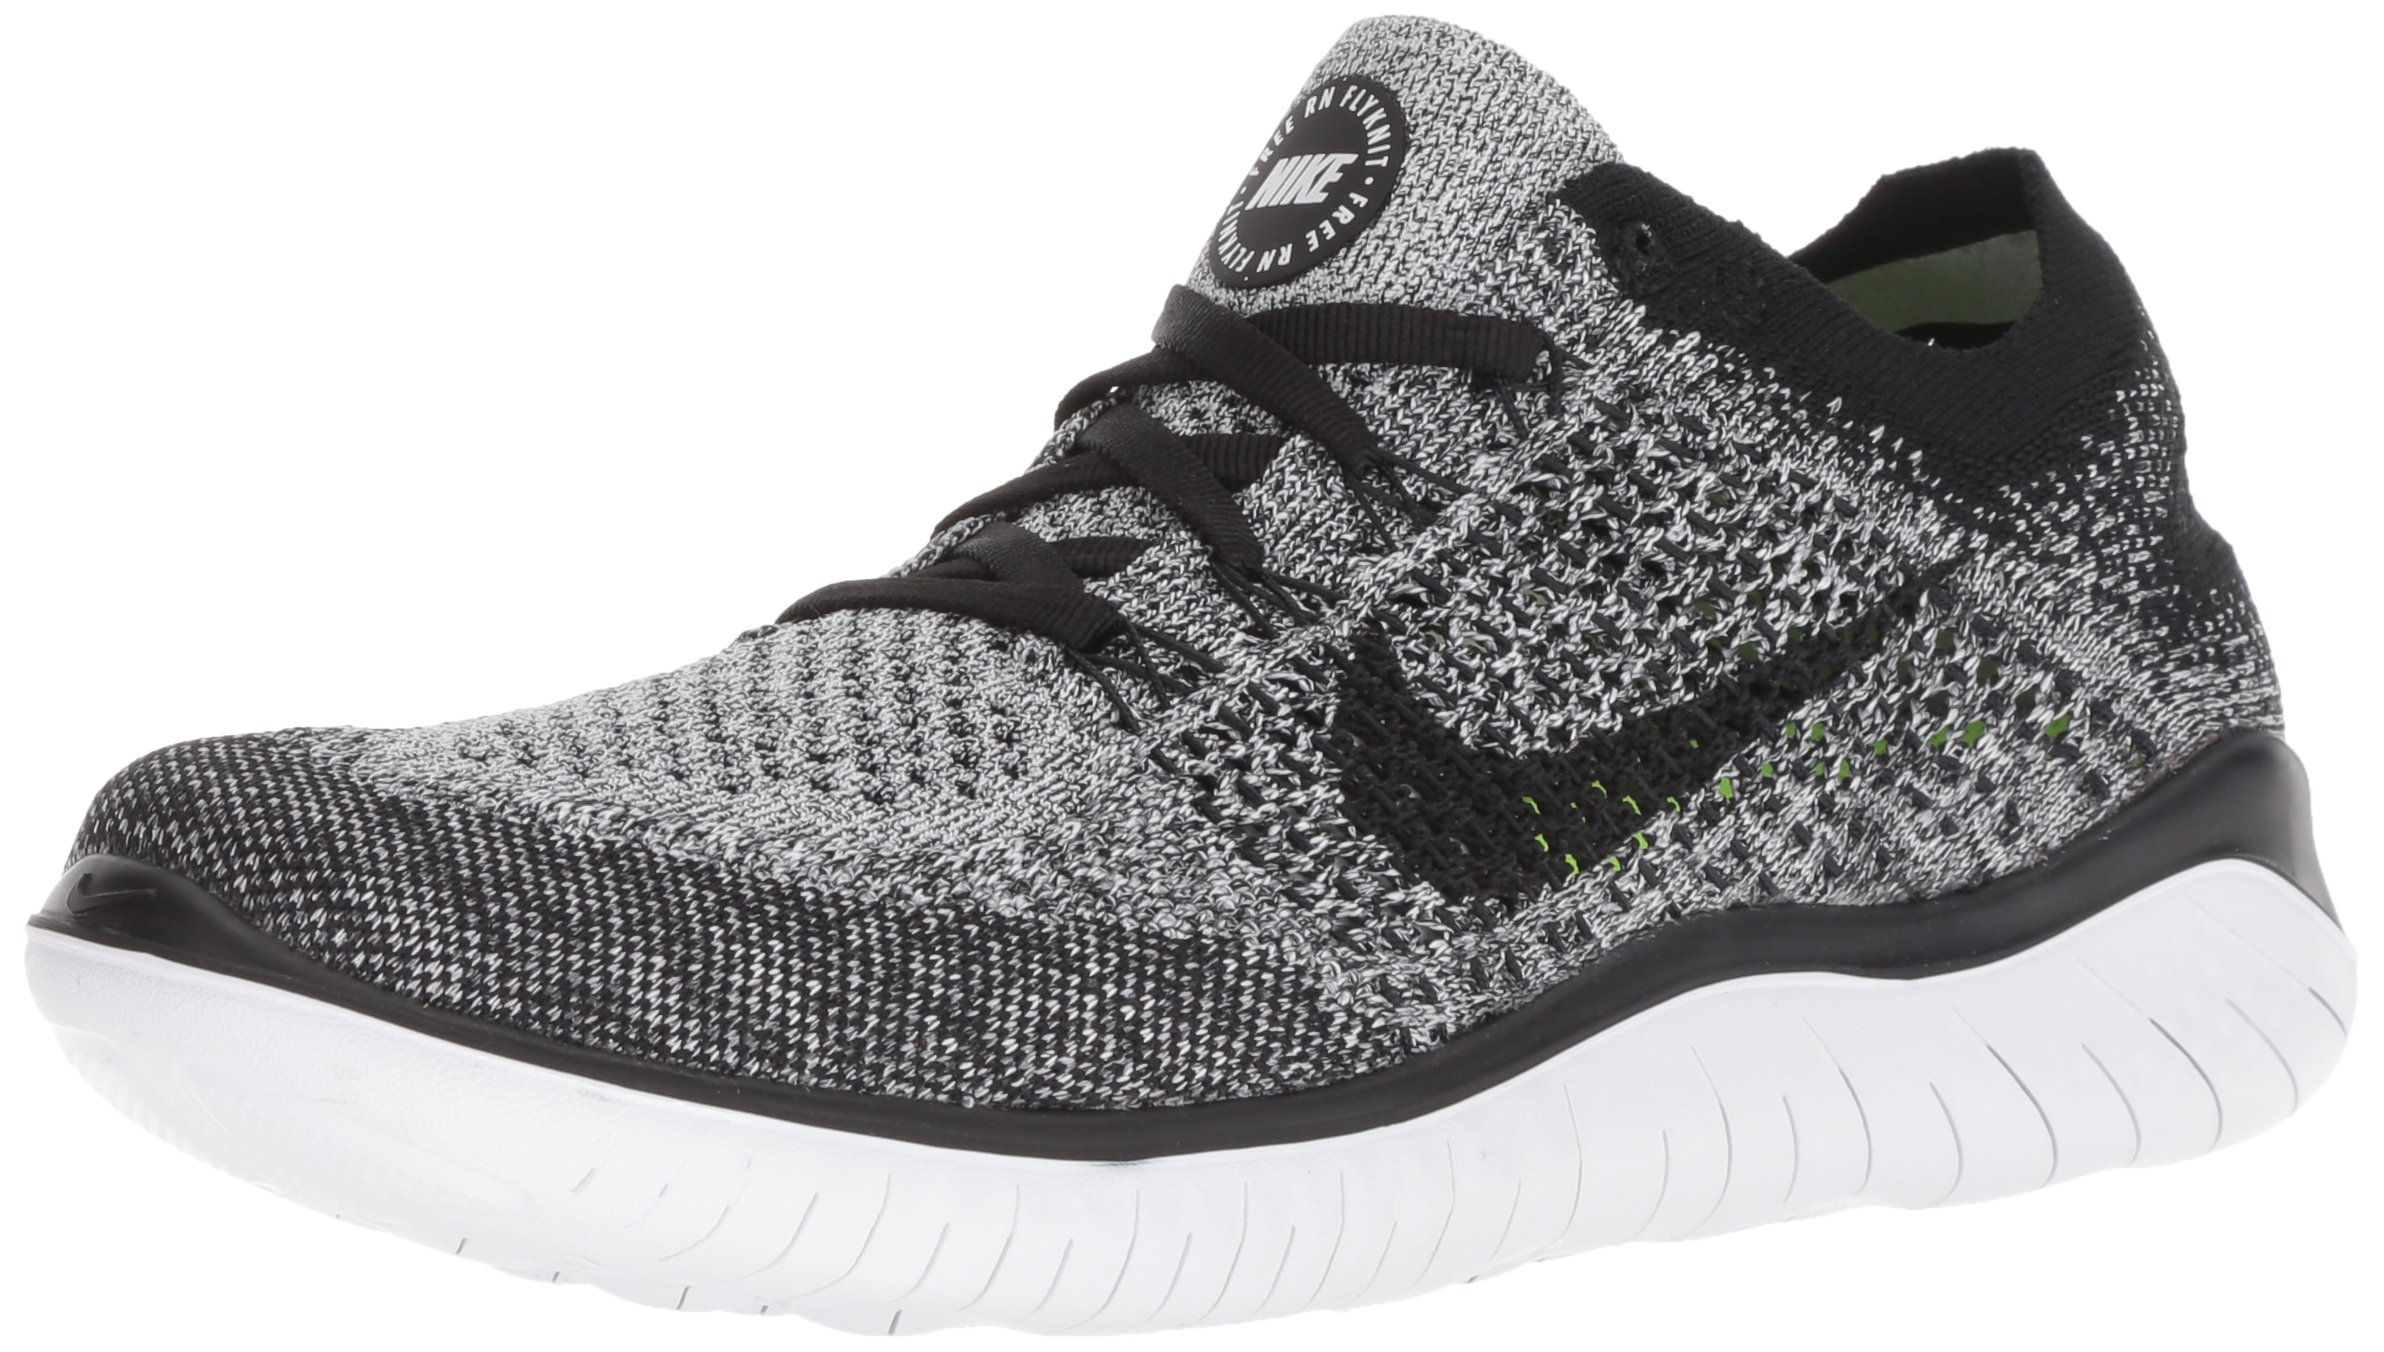 67b868434c2 Galleon - Nike Women s Free RN Flyknit 2018 Running Shoe